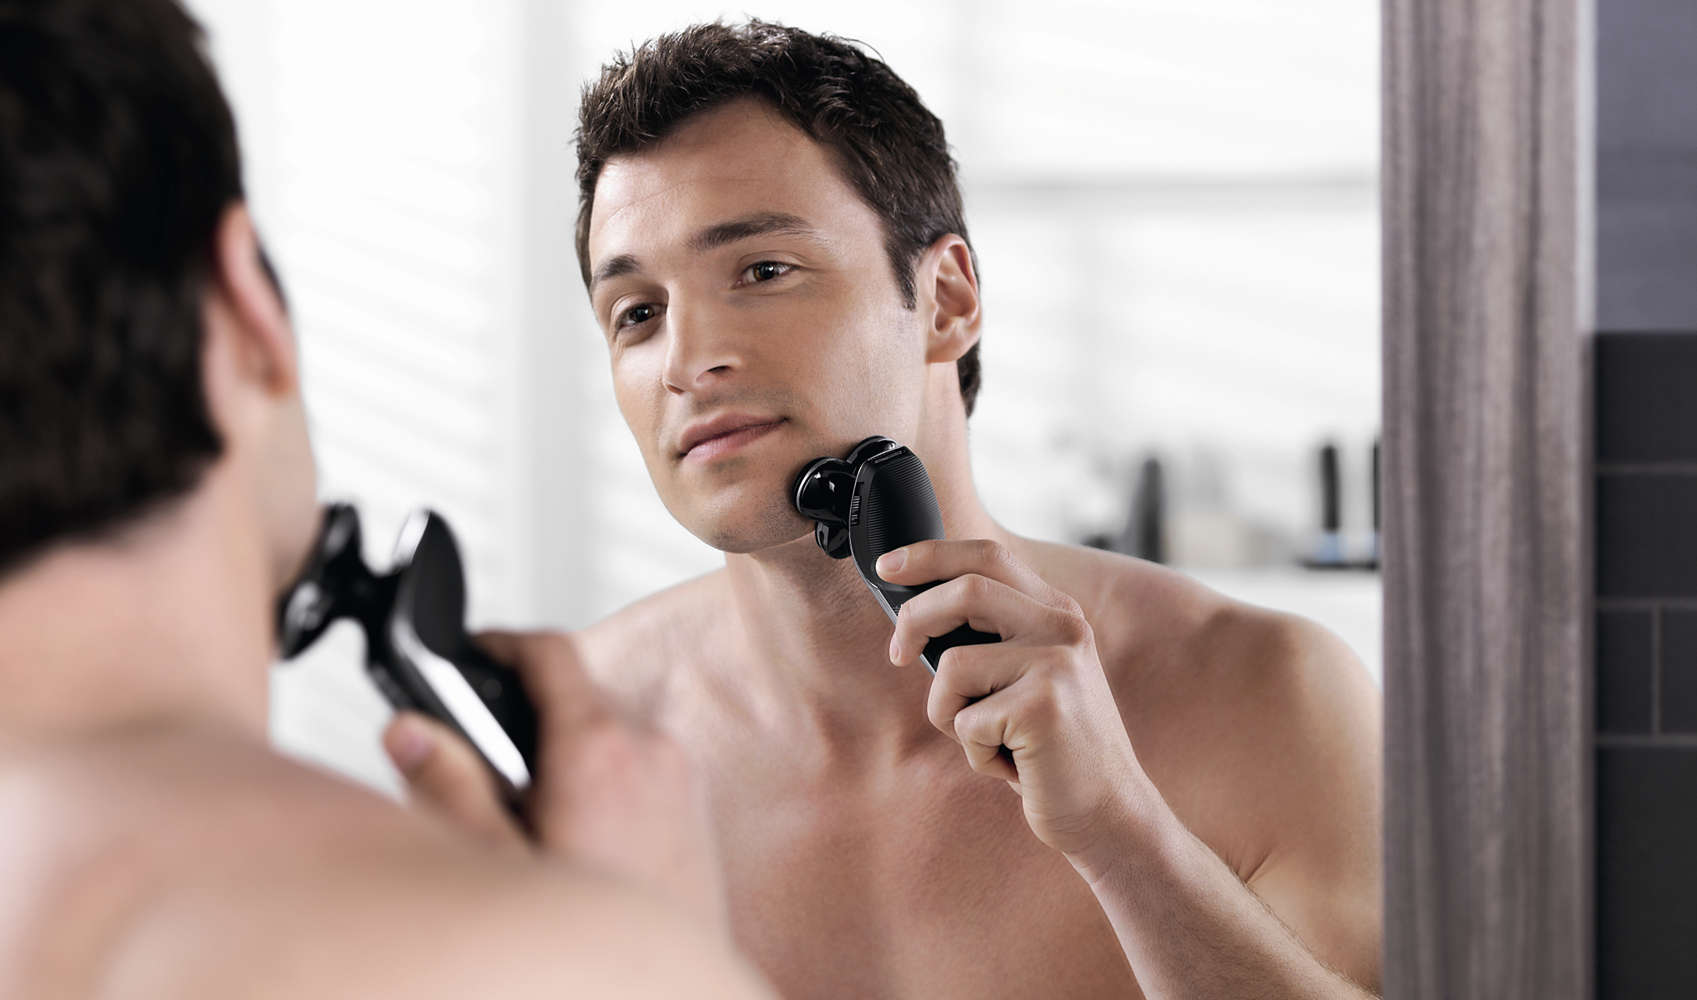 Philips Norelco 1280X/86 Shaver 8900 Review and picture